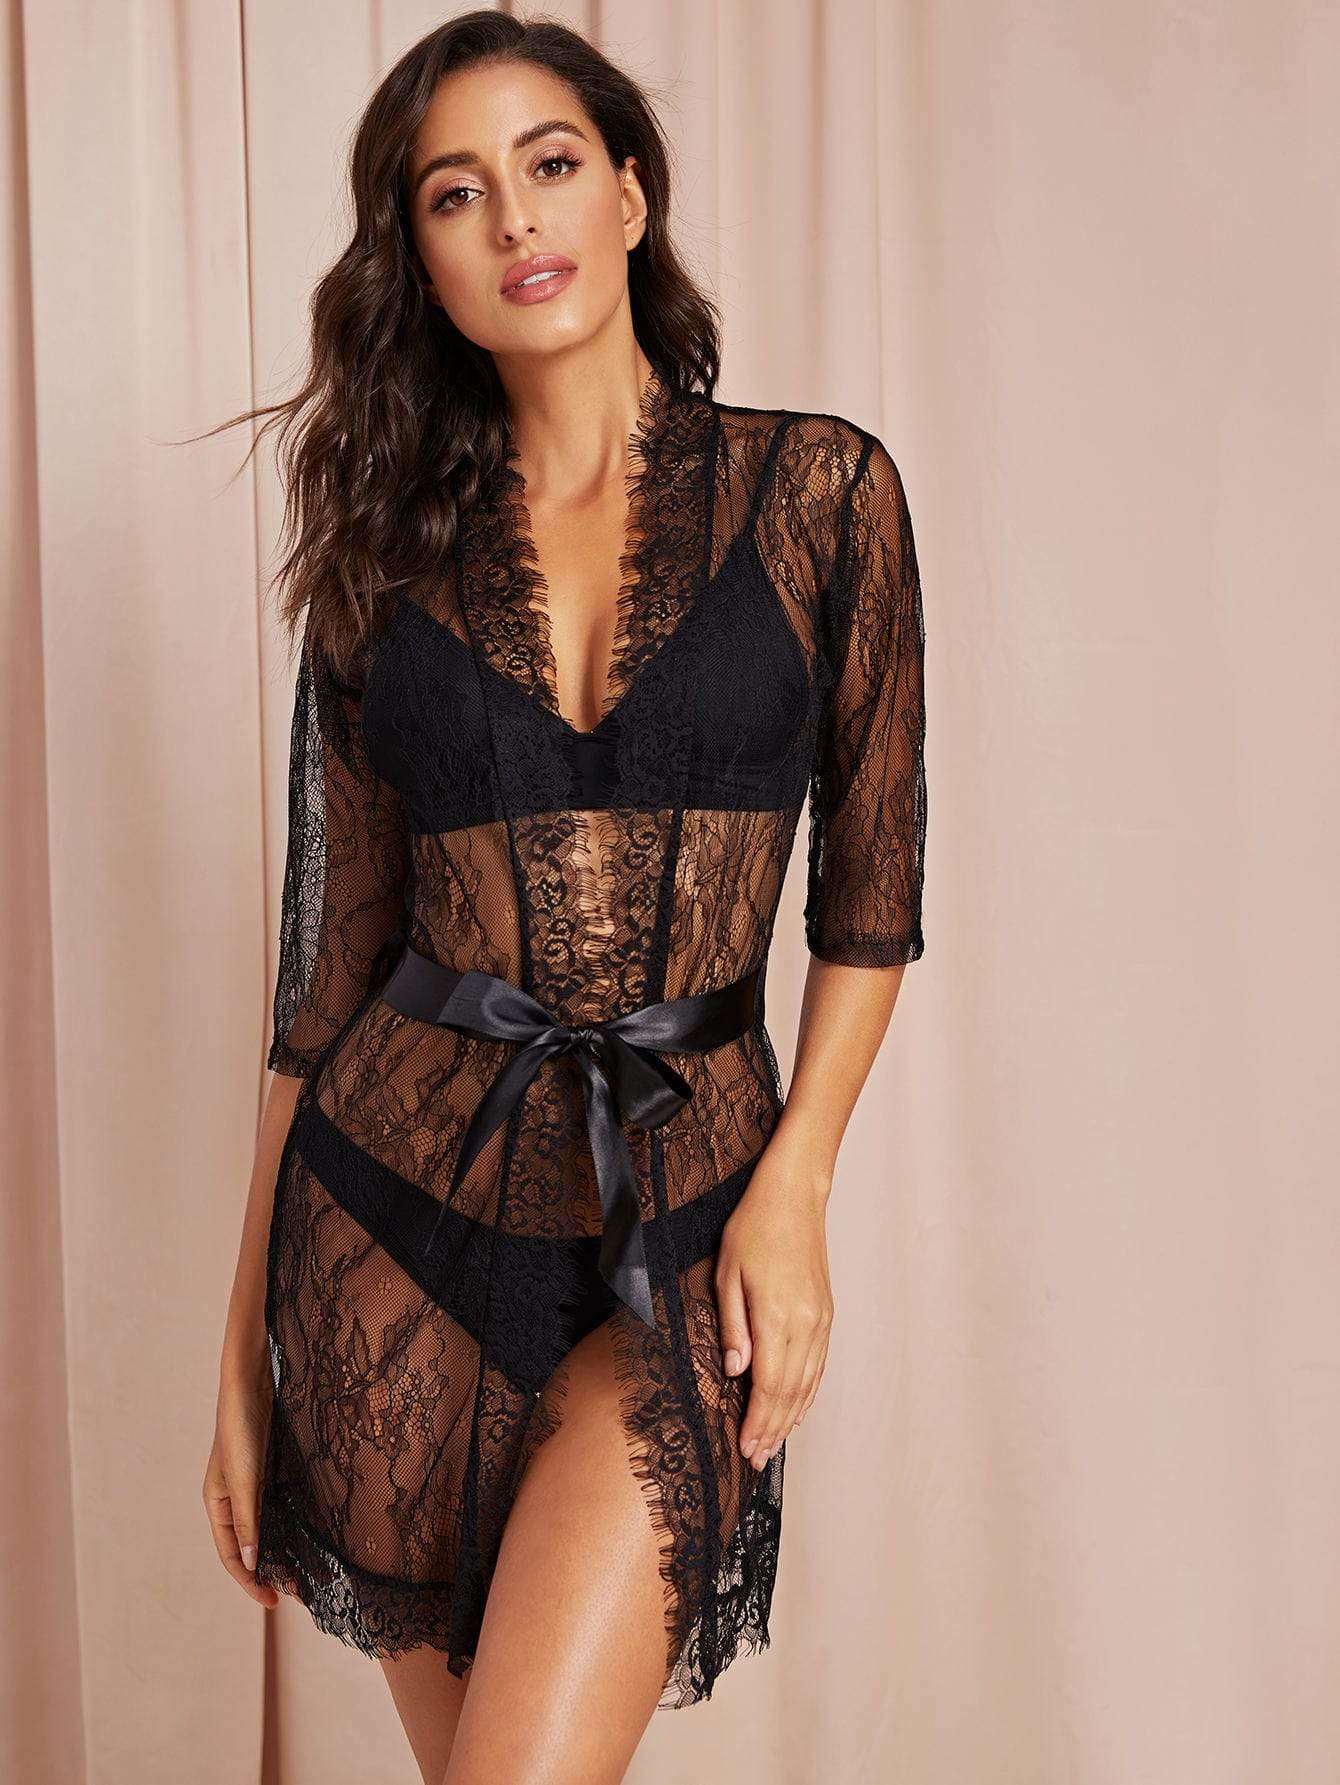 Eyelash Lace Sheer Belted Robe With Thong - S - Nightwears